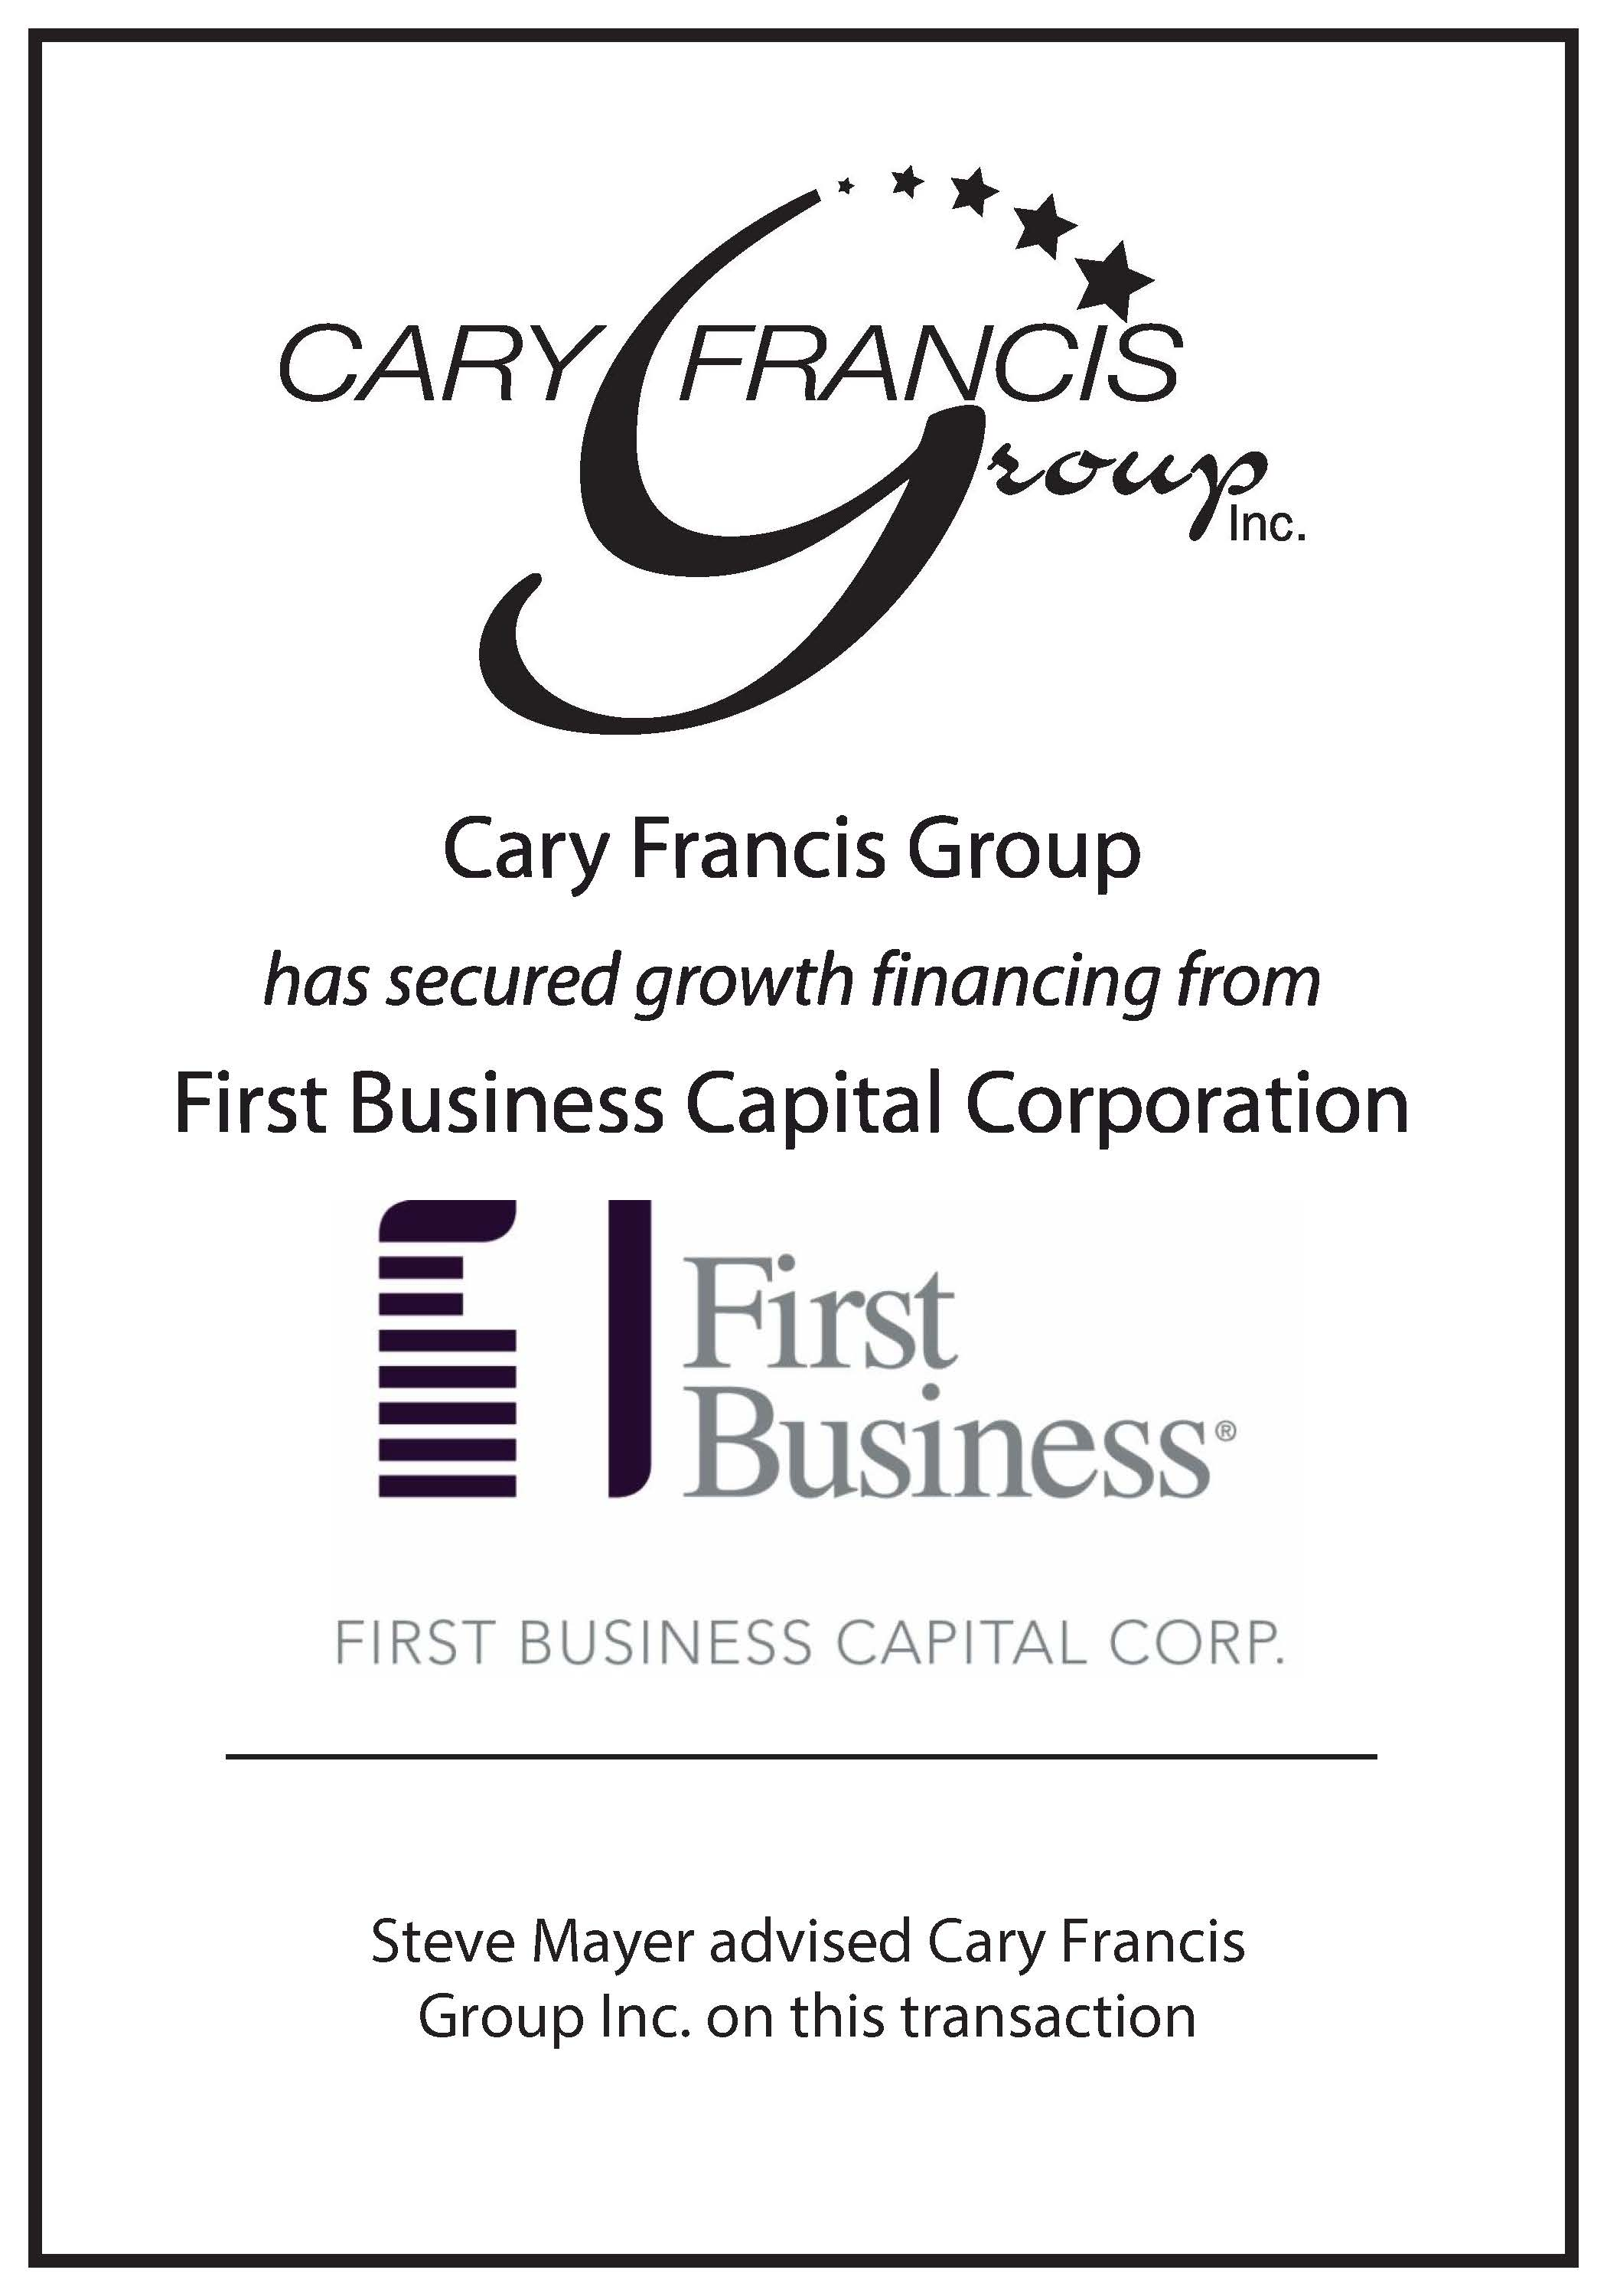 Cary Francis Group